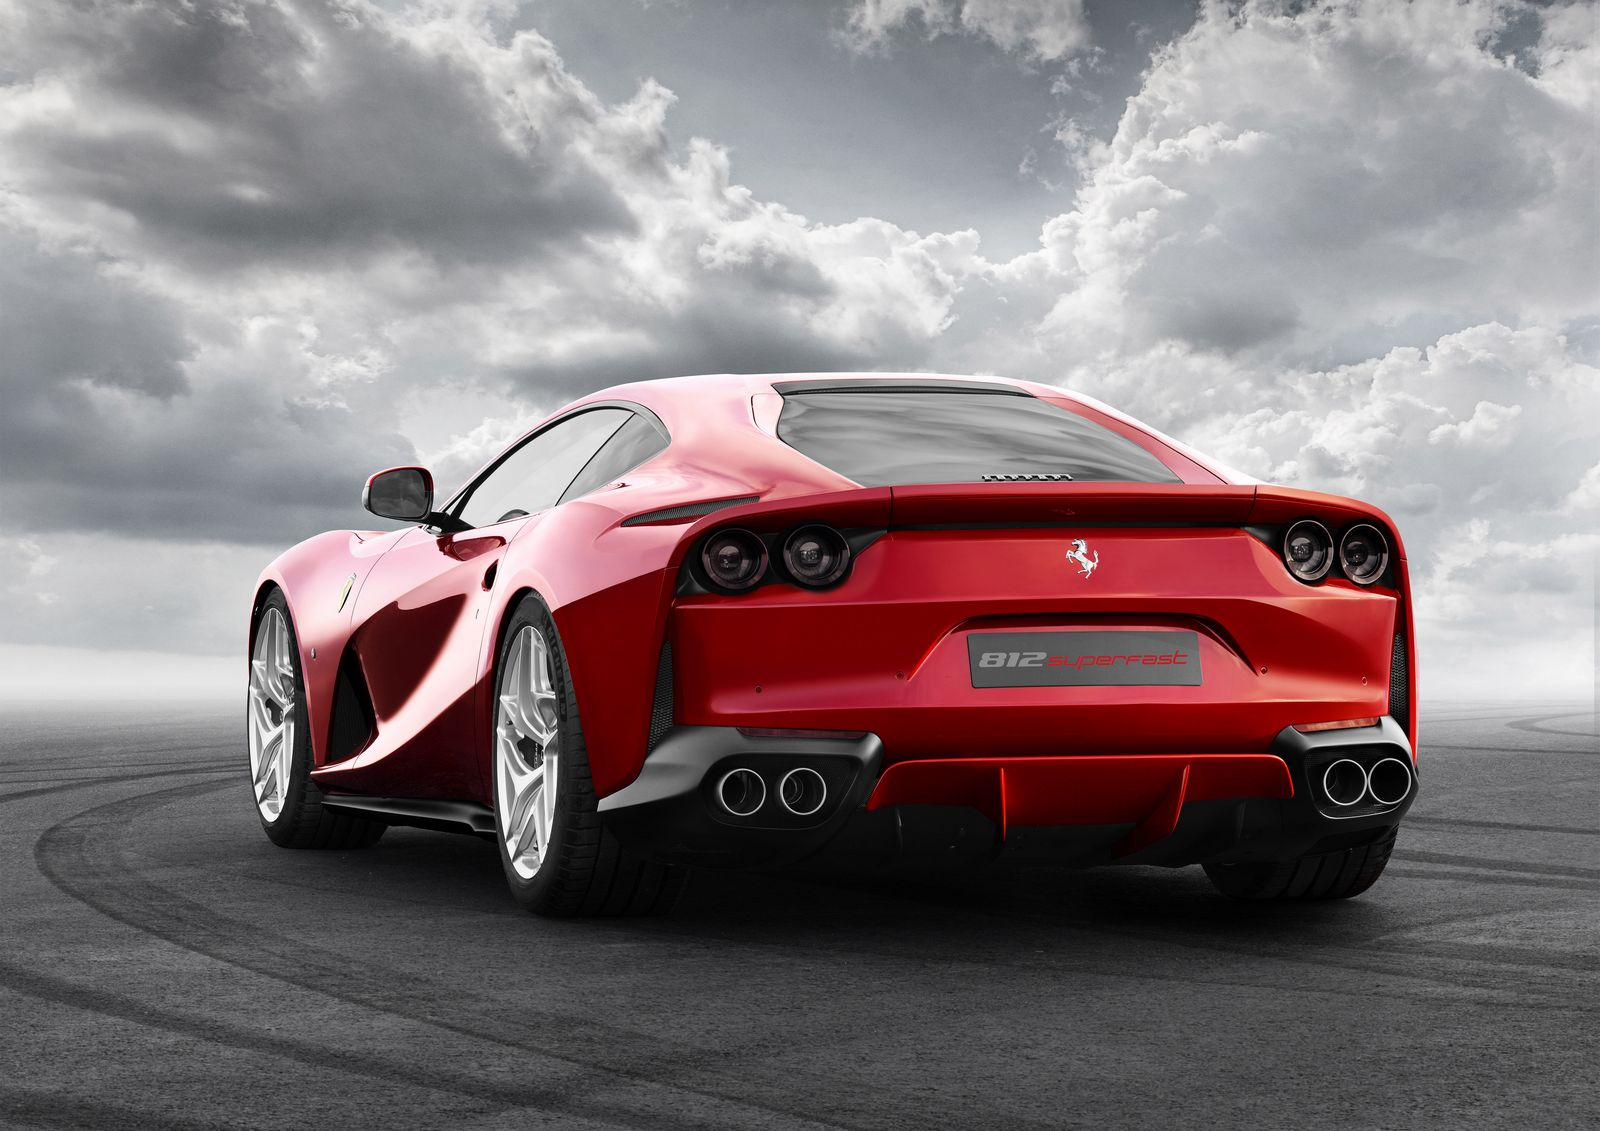 ferrari-812-monza-teased-expected-with-250-testa-rossa-style-pontoon-fenders_5